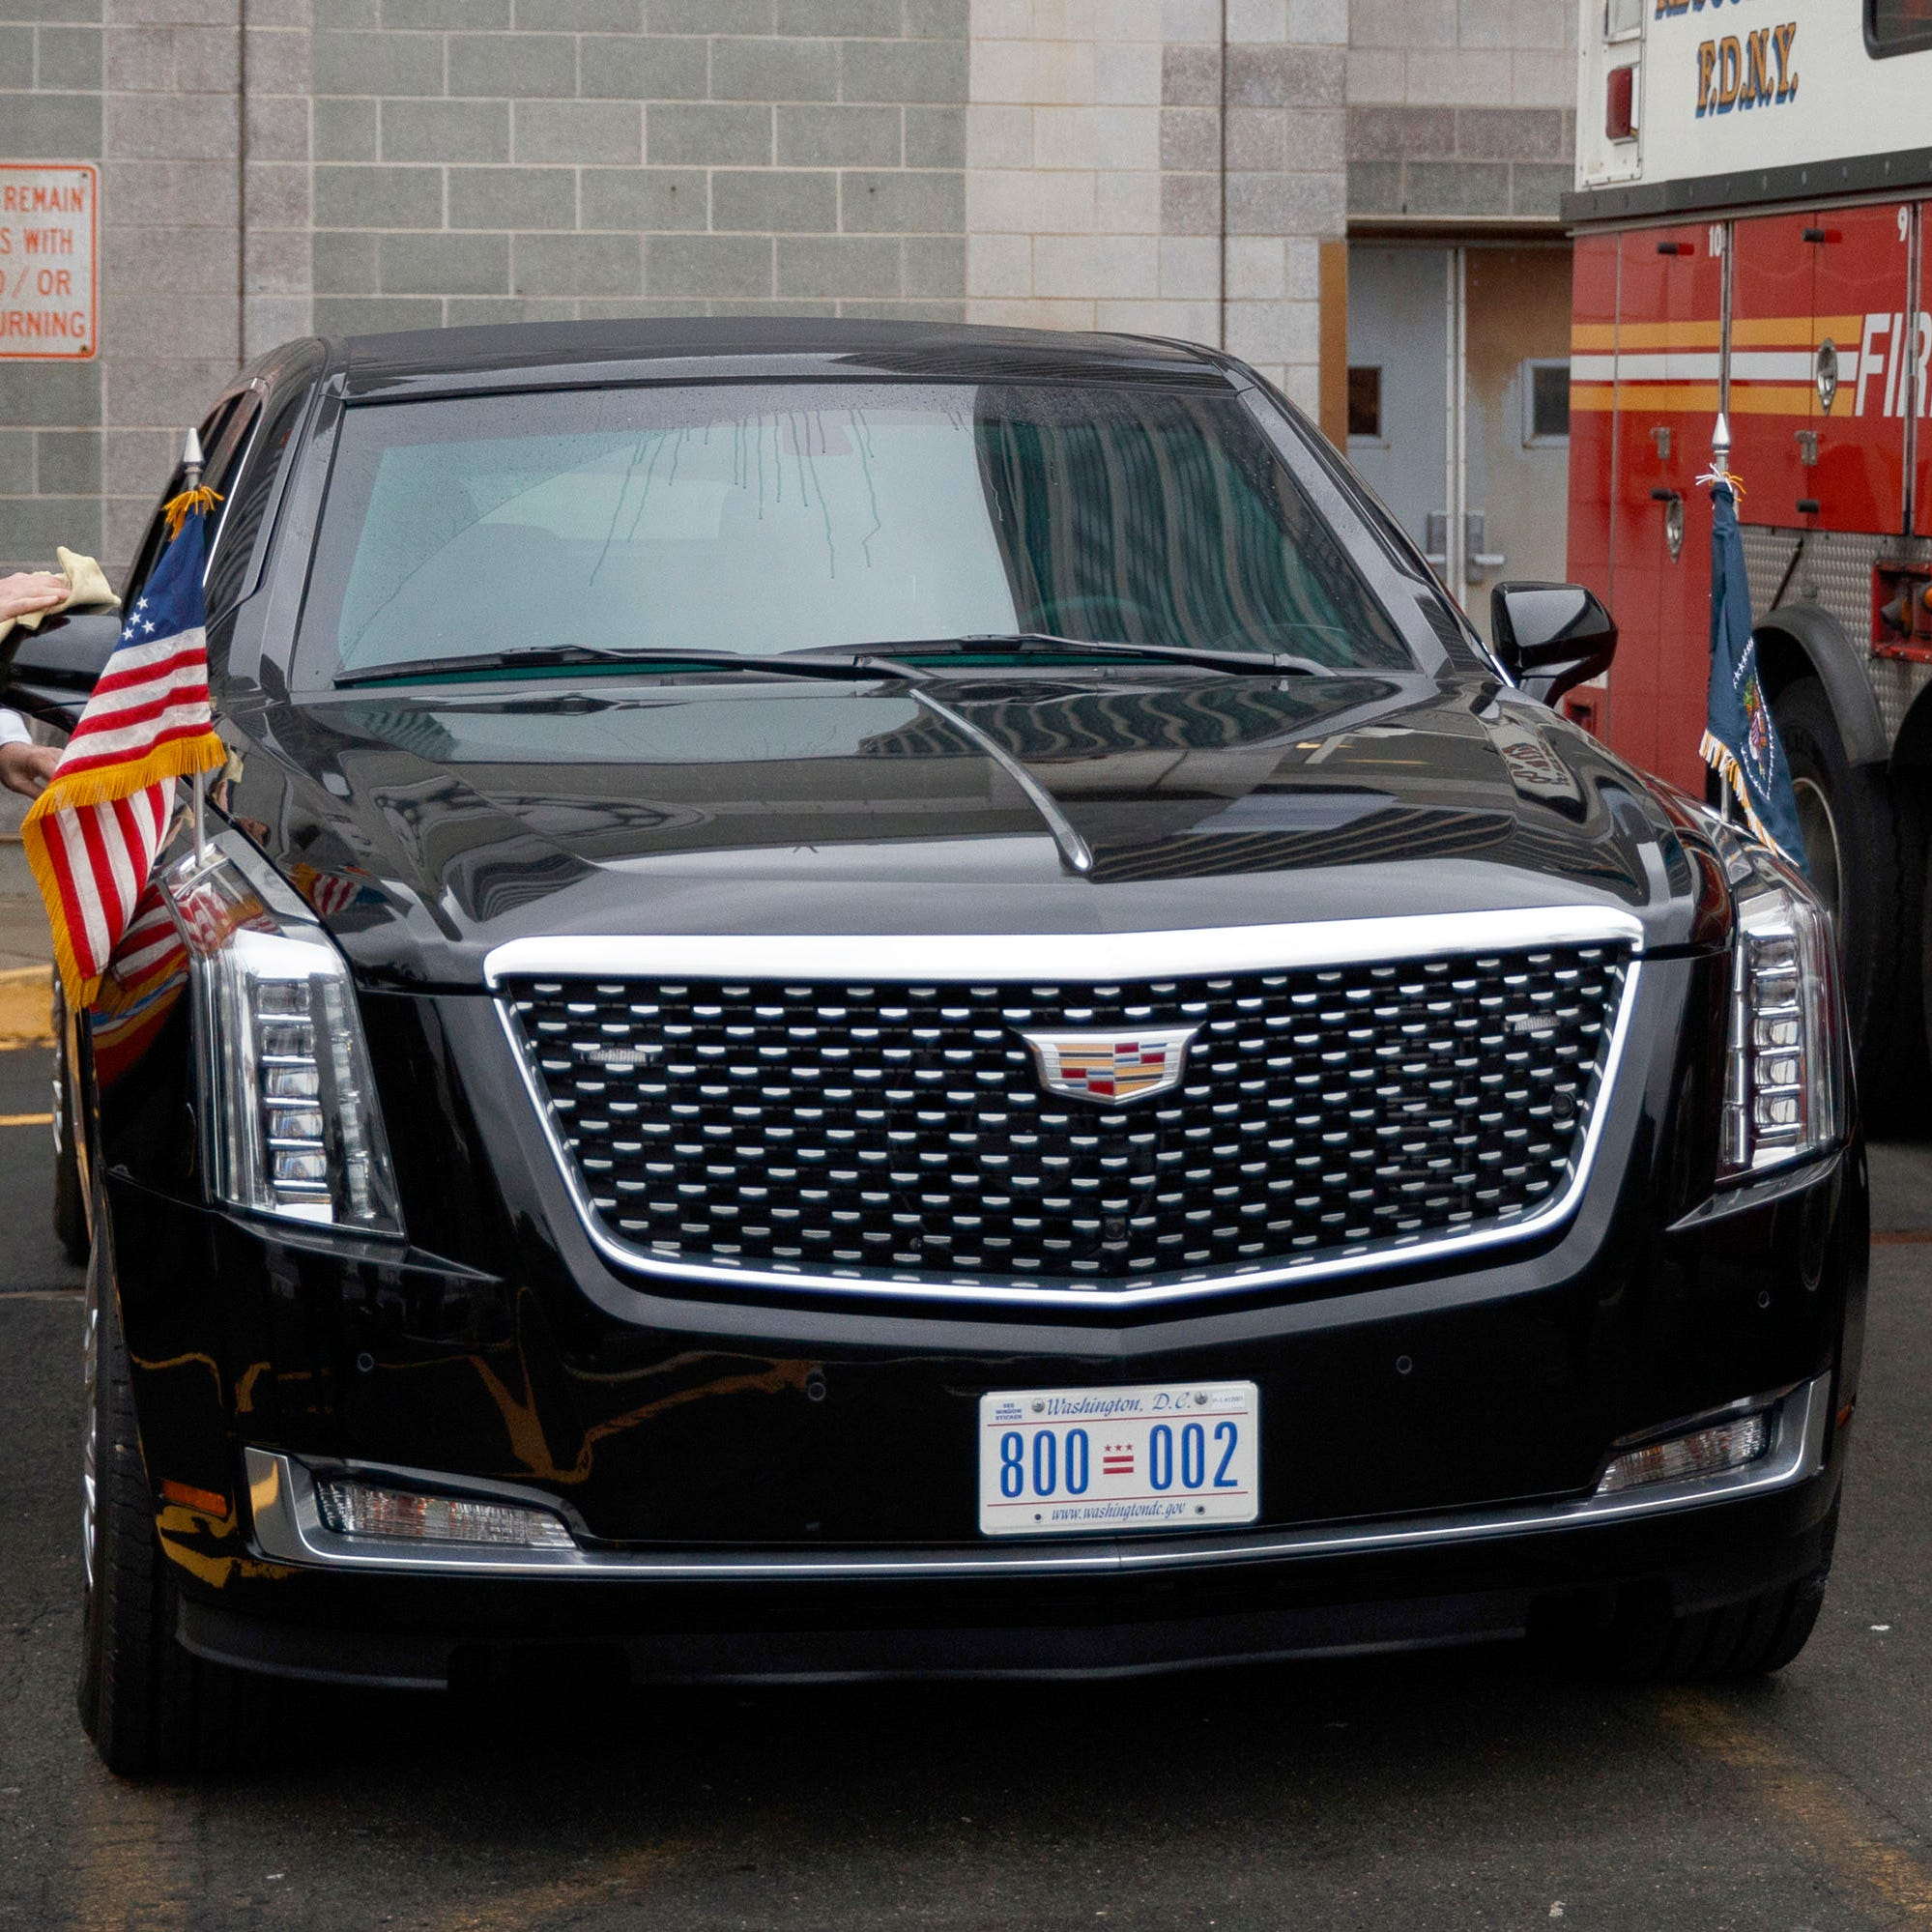 Cadillac just built Donald Trump a beast of a limo worth millions